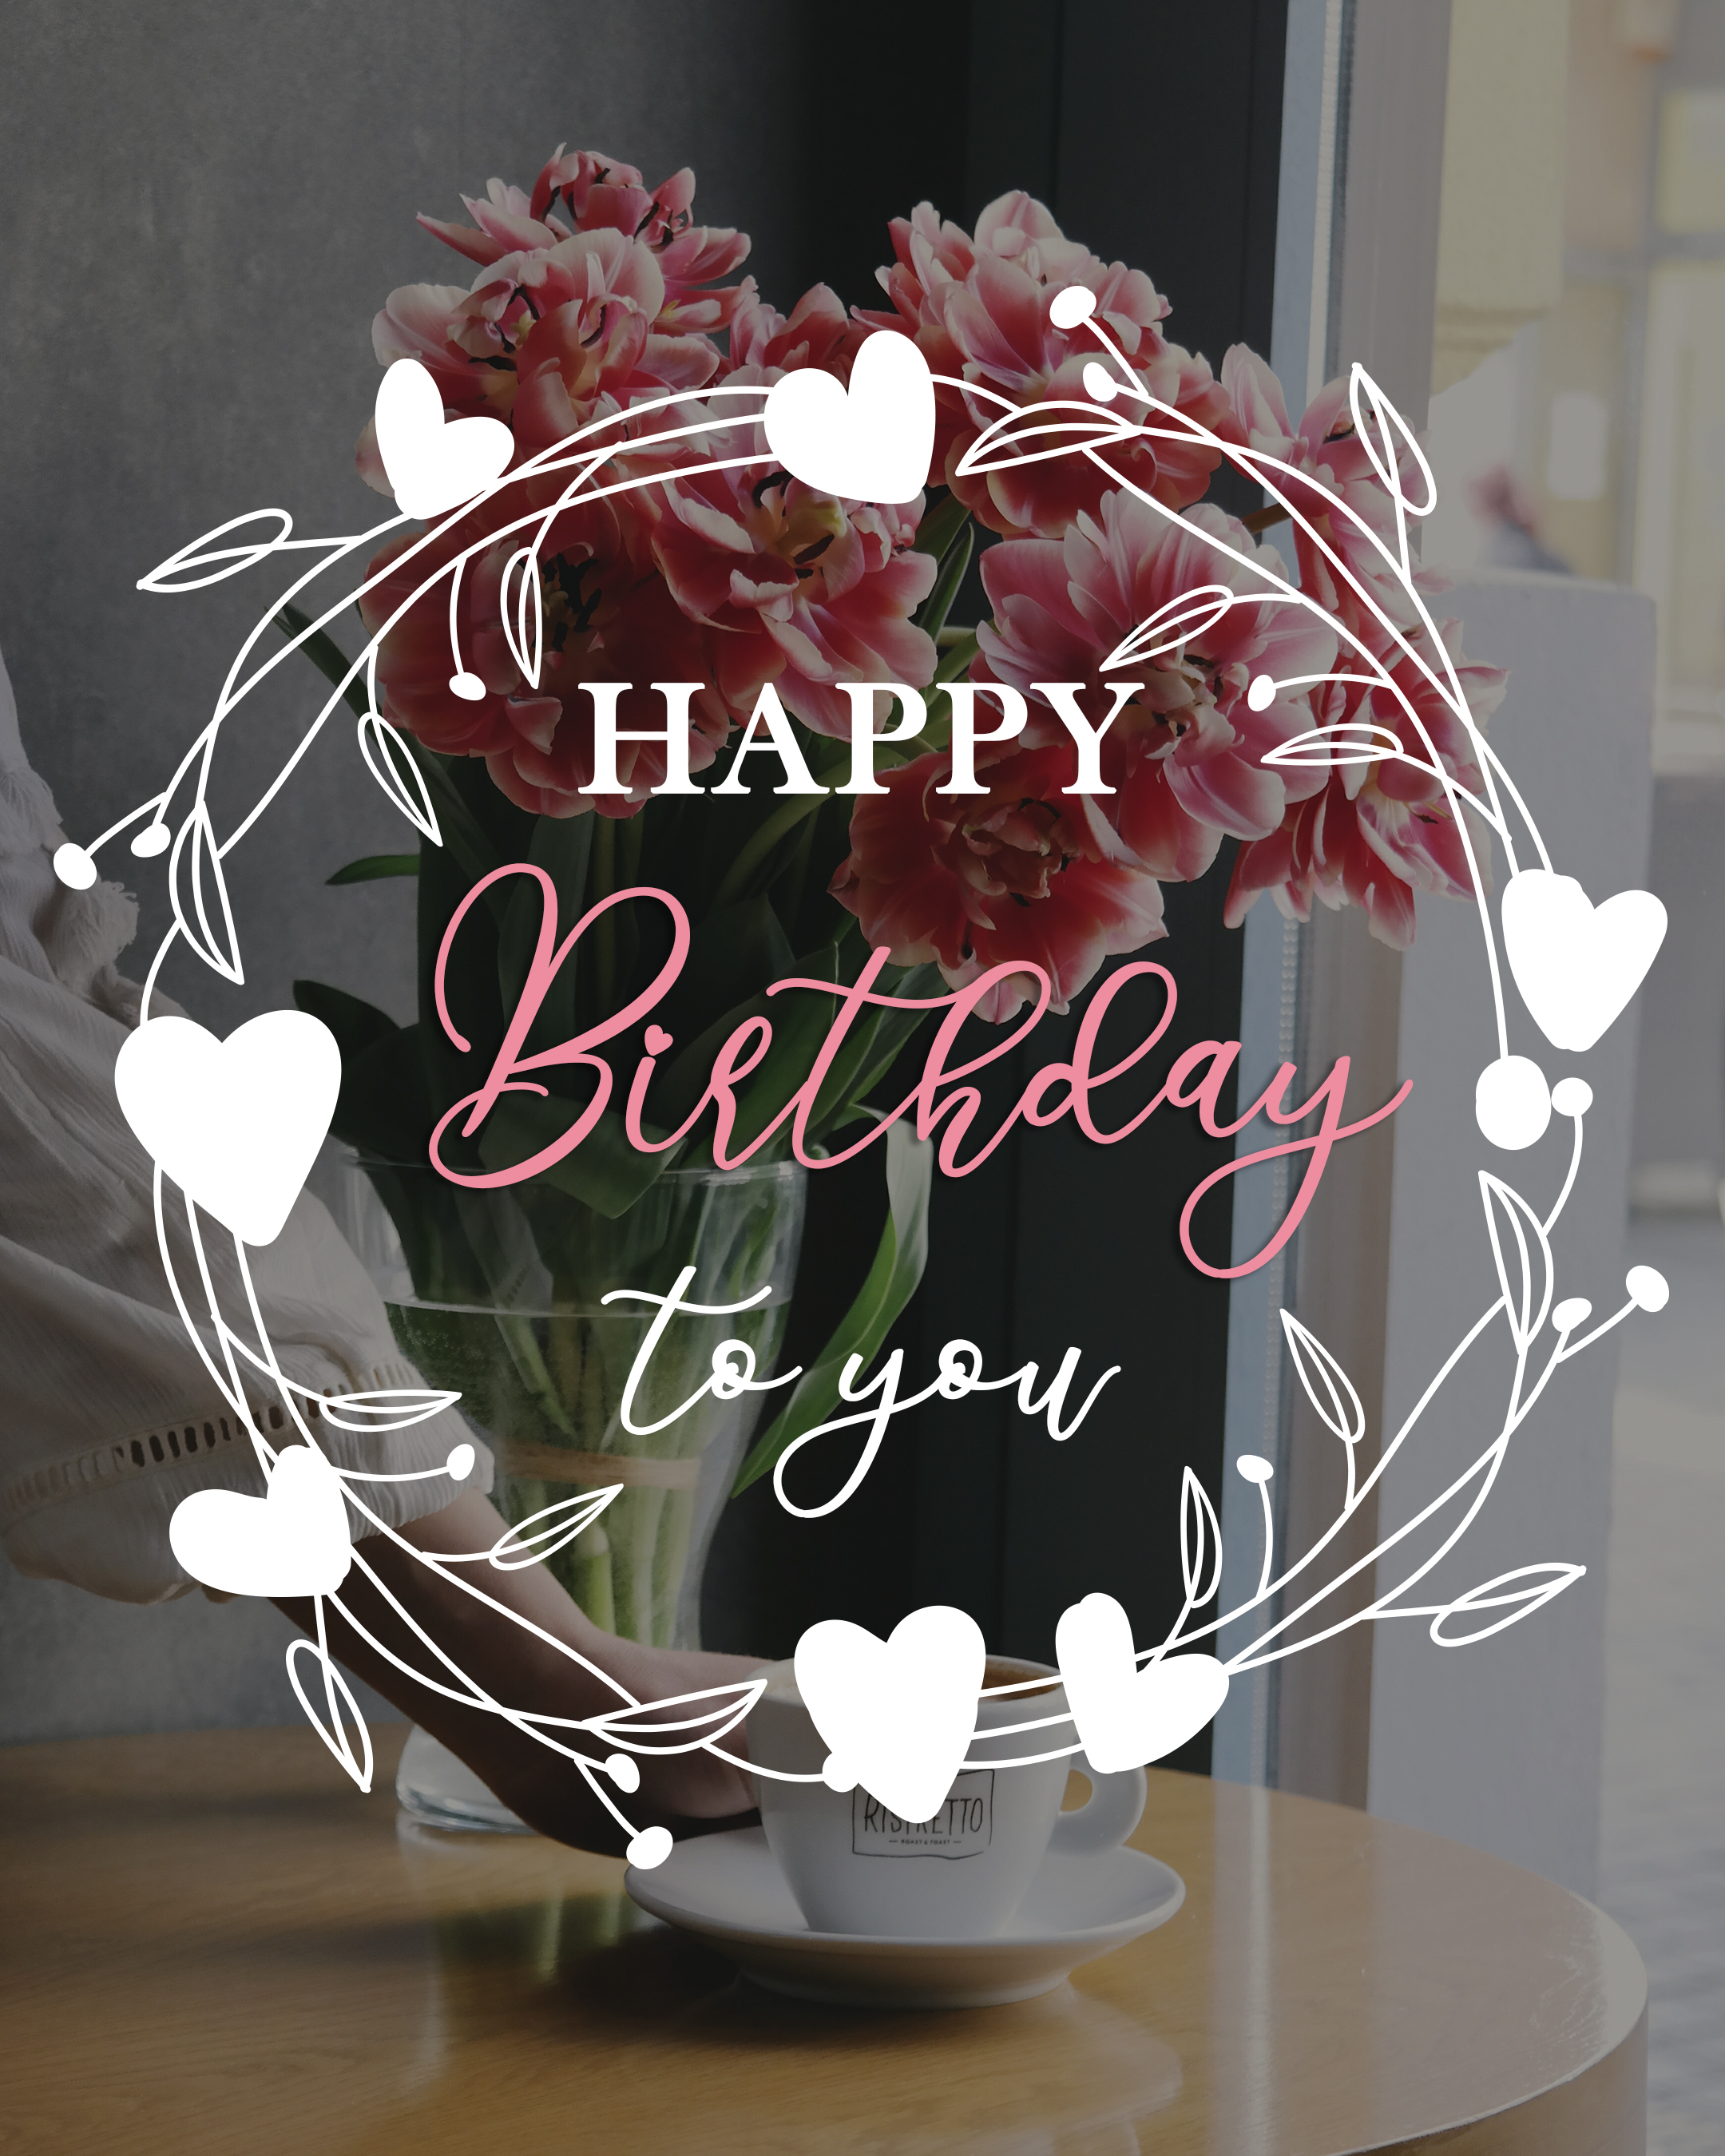 Free Happy Birthday Image For Her (Woman) With Flowers - birthdayimg.com